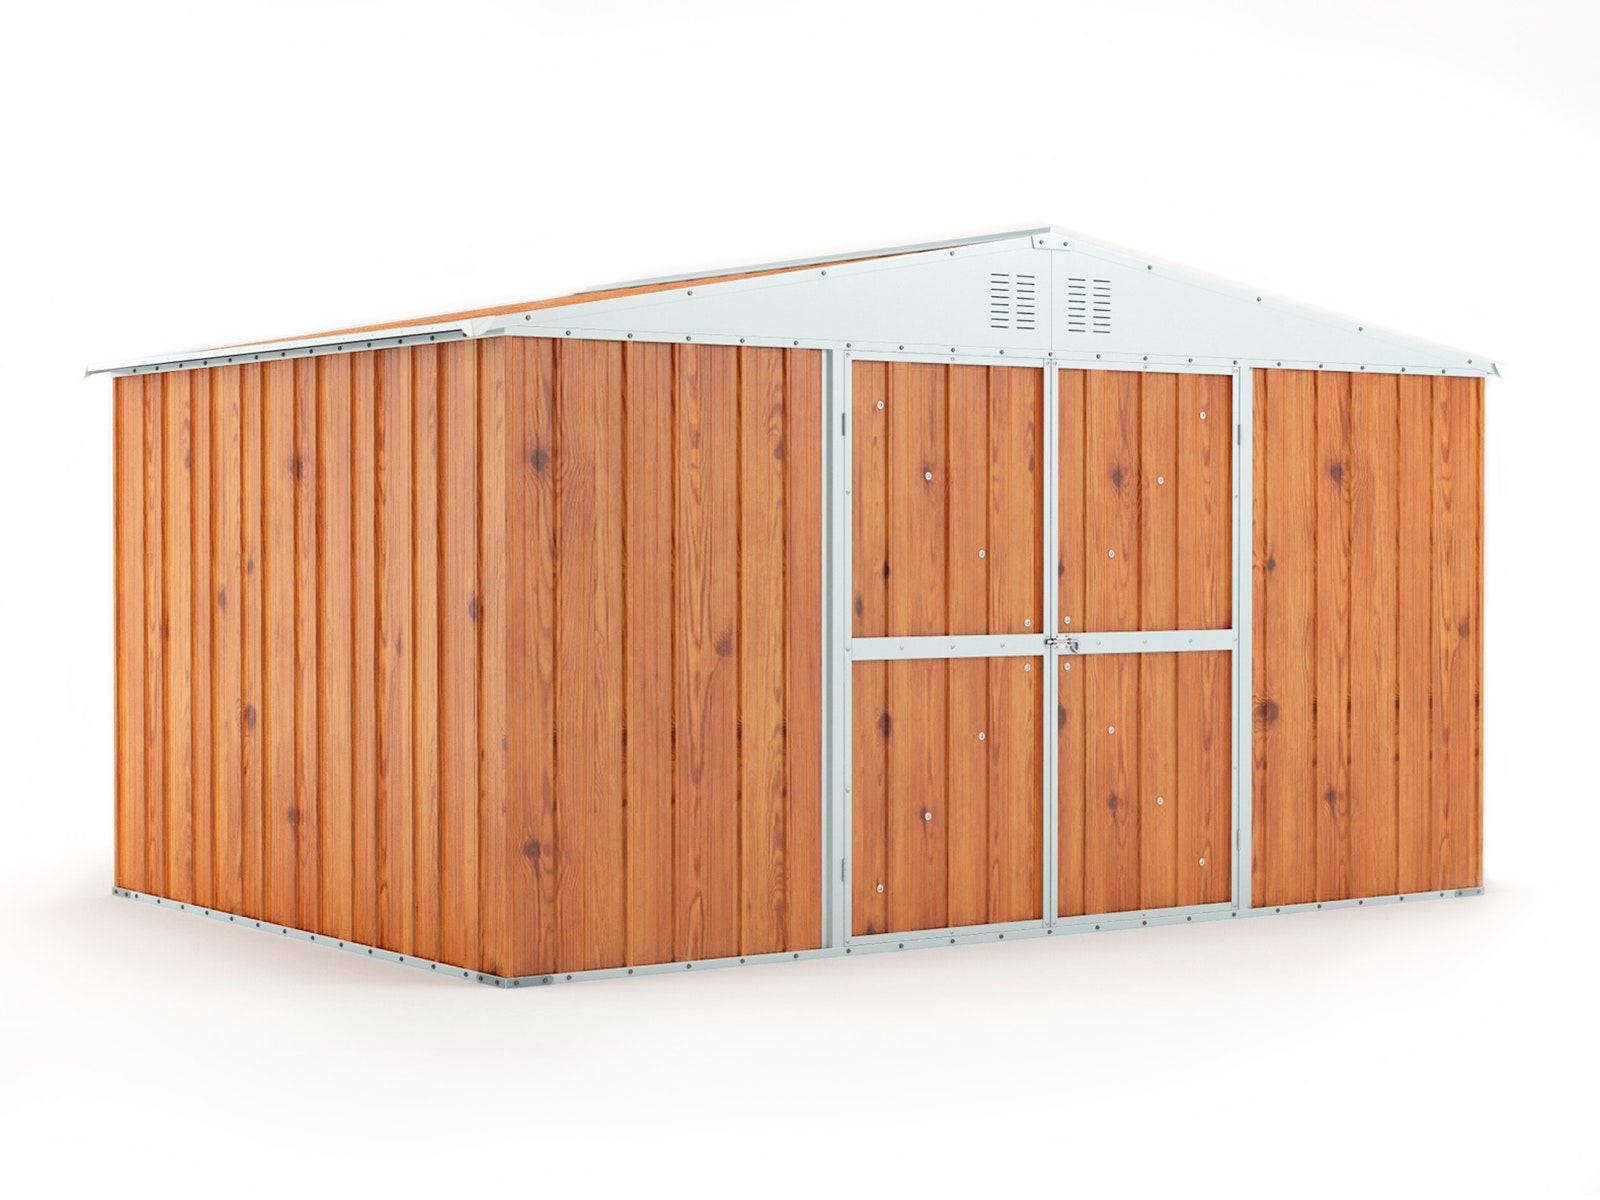 Garden Shed 3.83m x 2.69m x 2.17m Wood Finish